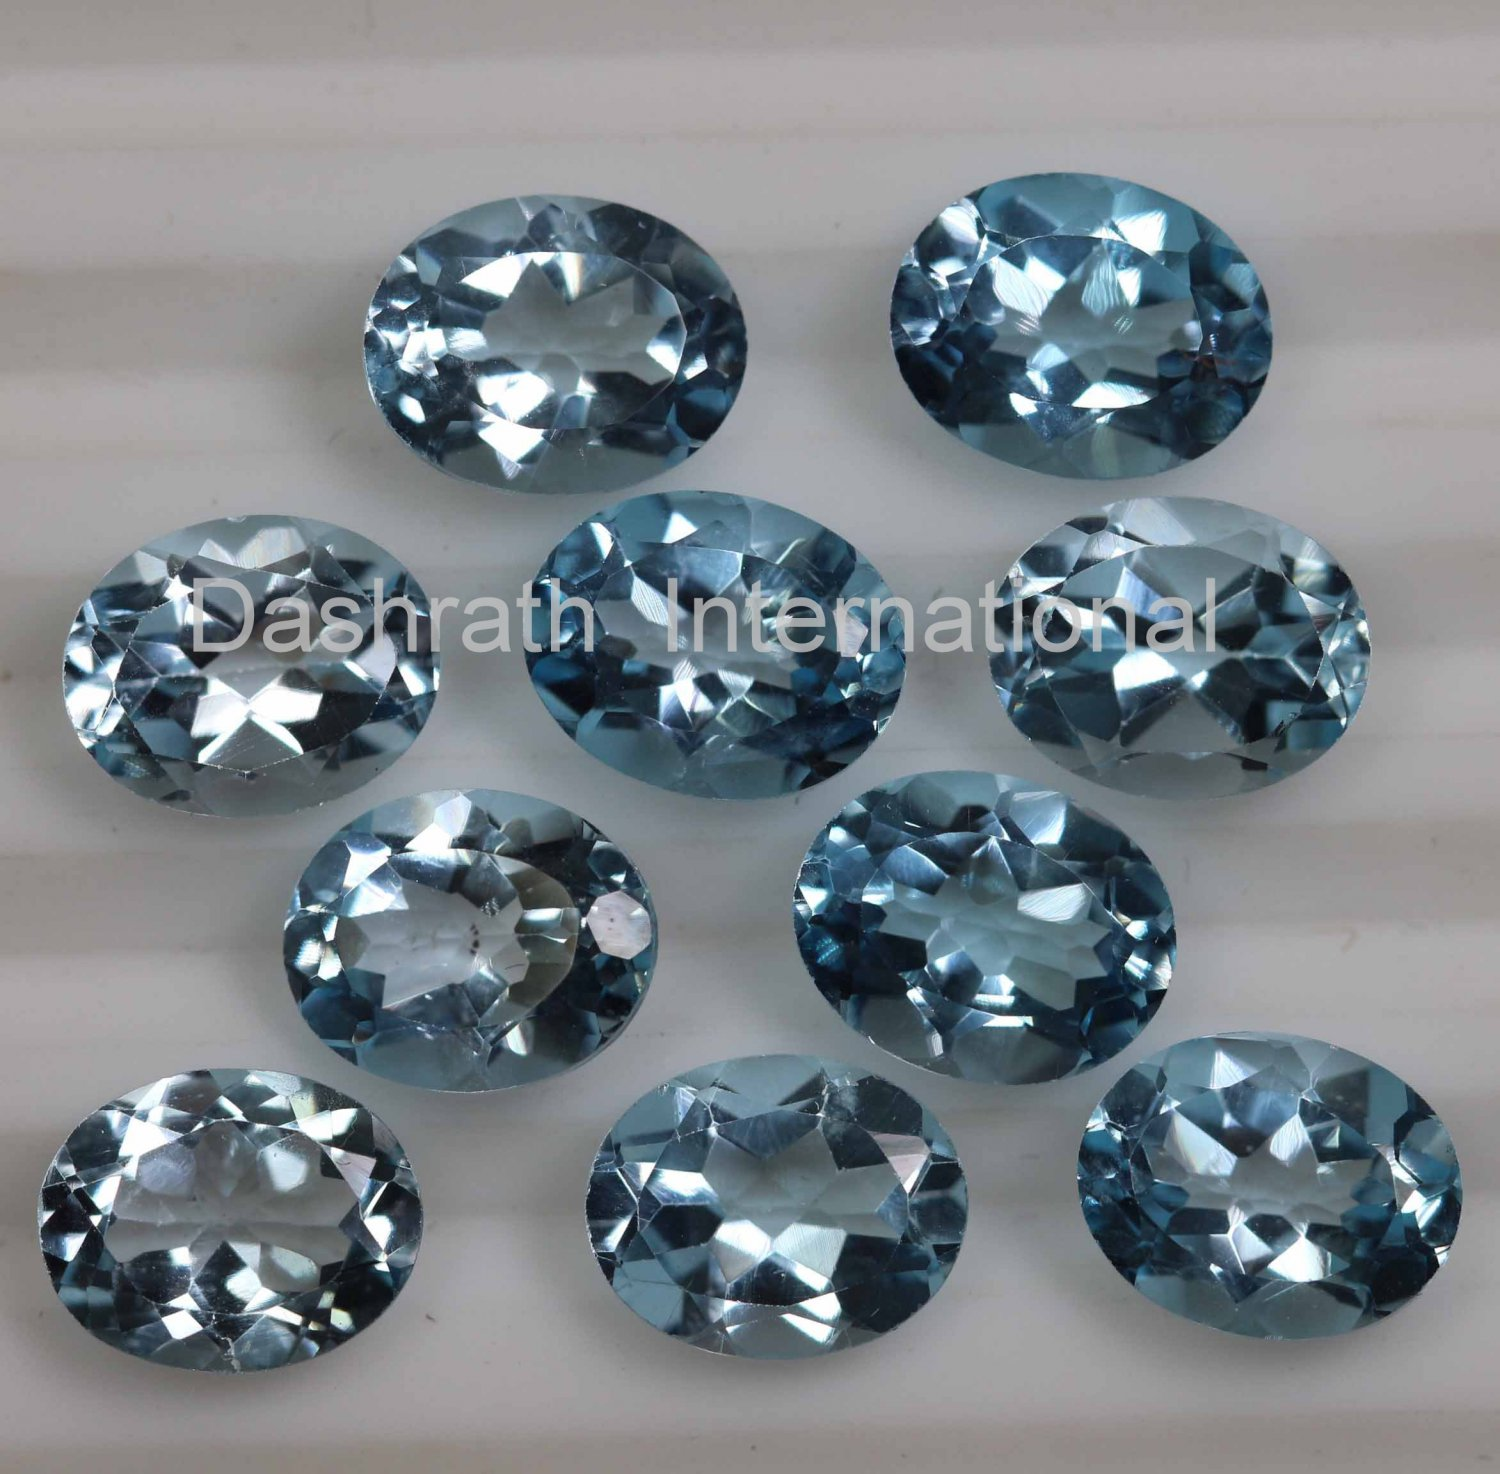 7x5mm Natural Sky Blue Topaz Faceted Cut Oval  5 Pieces Lot  Top Quality Loose Gemstone